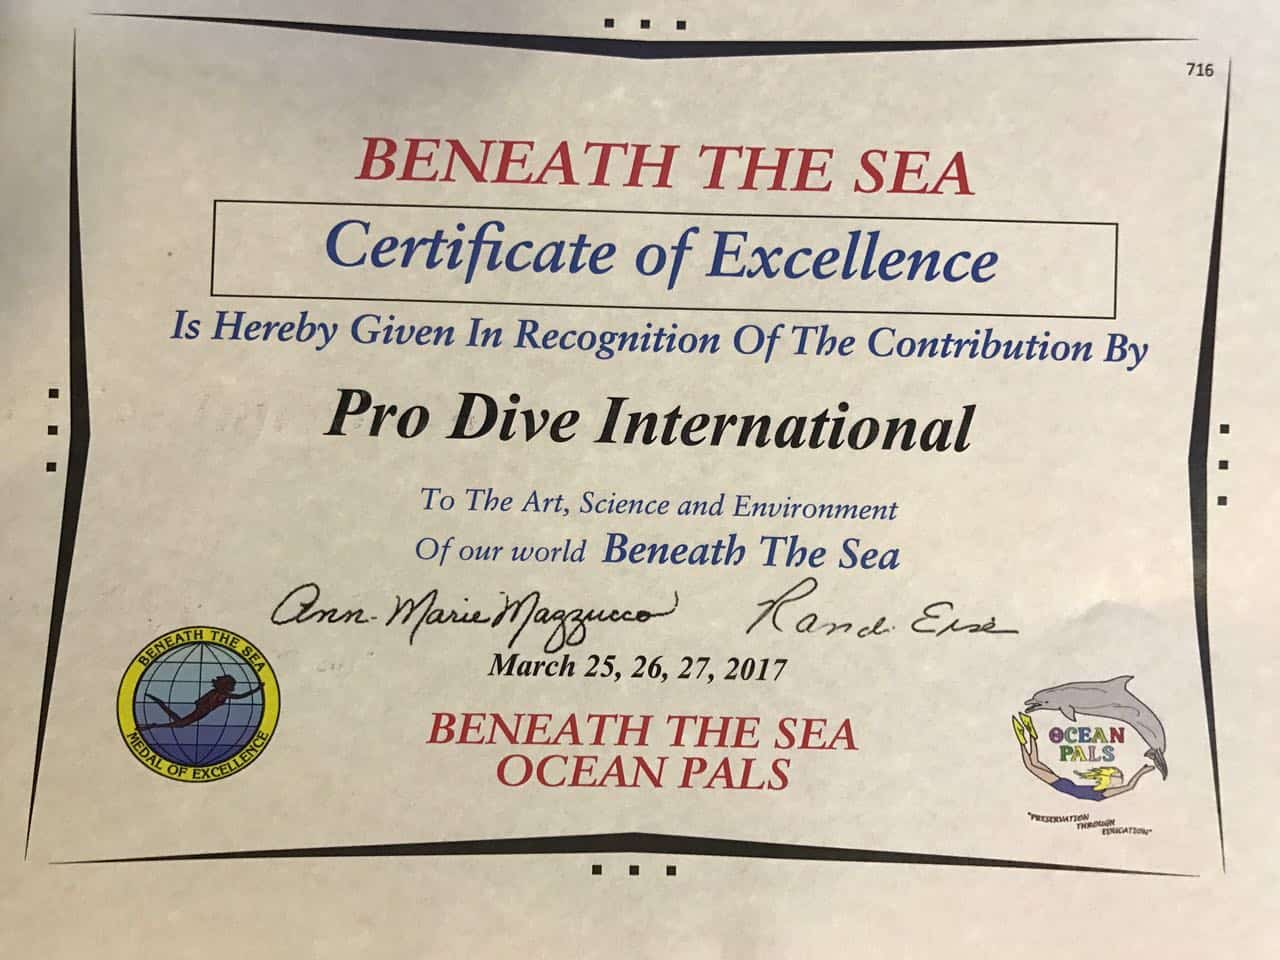 certificate-of-excellence-beneath-the-sea-pro-dive-international-2017